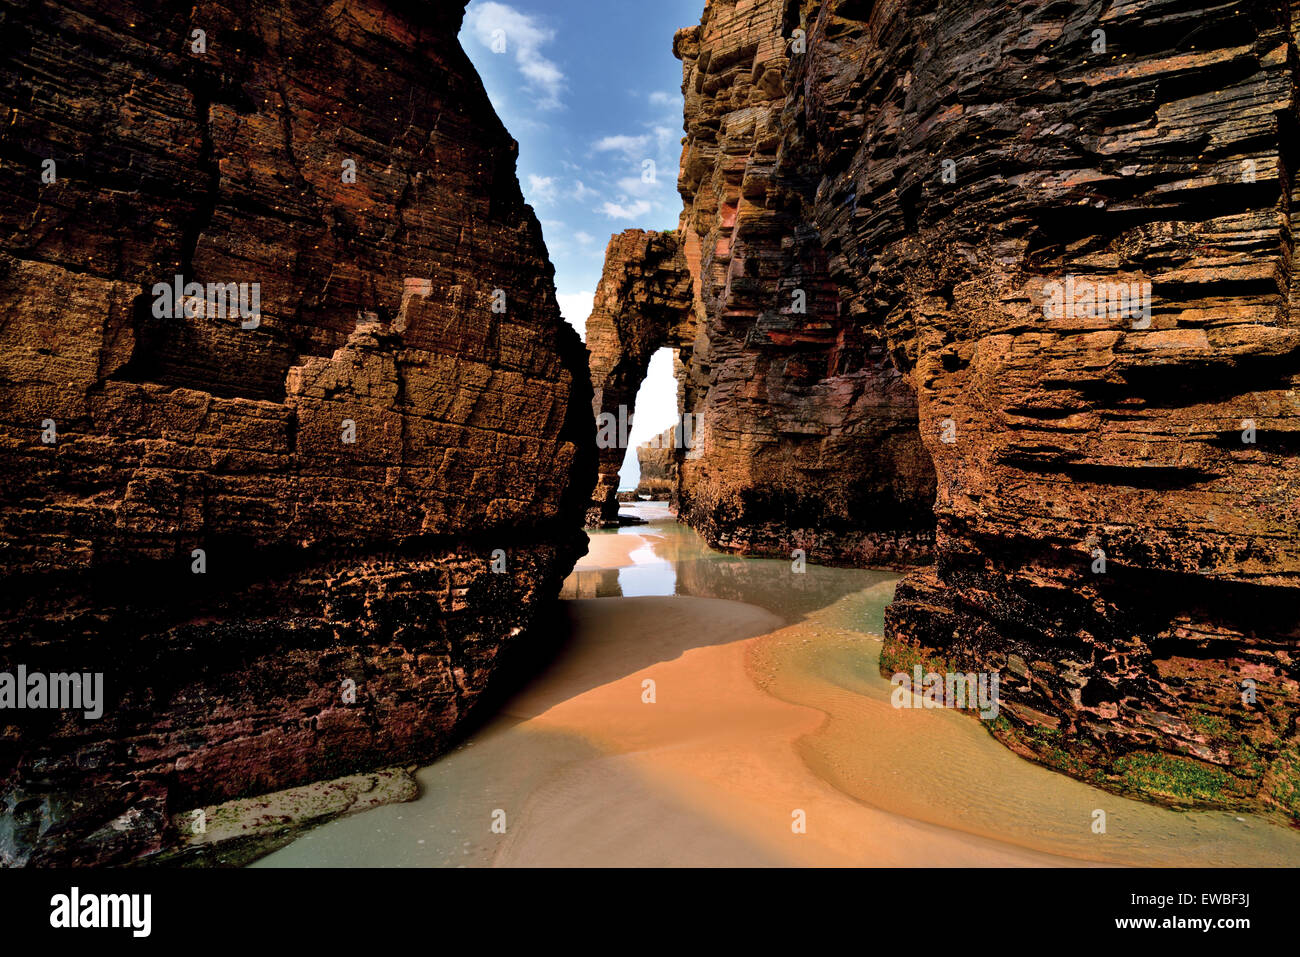 Spain, Galicia. Impressing rock formations at Praia As Catedrais - Stock Image